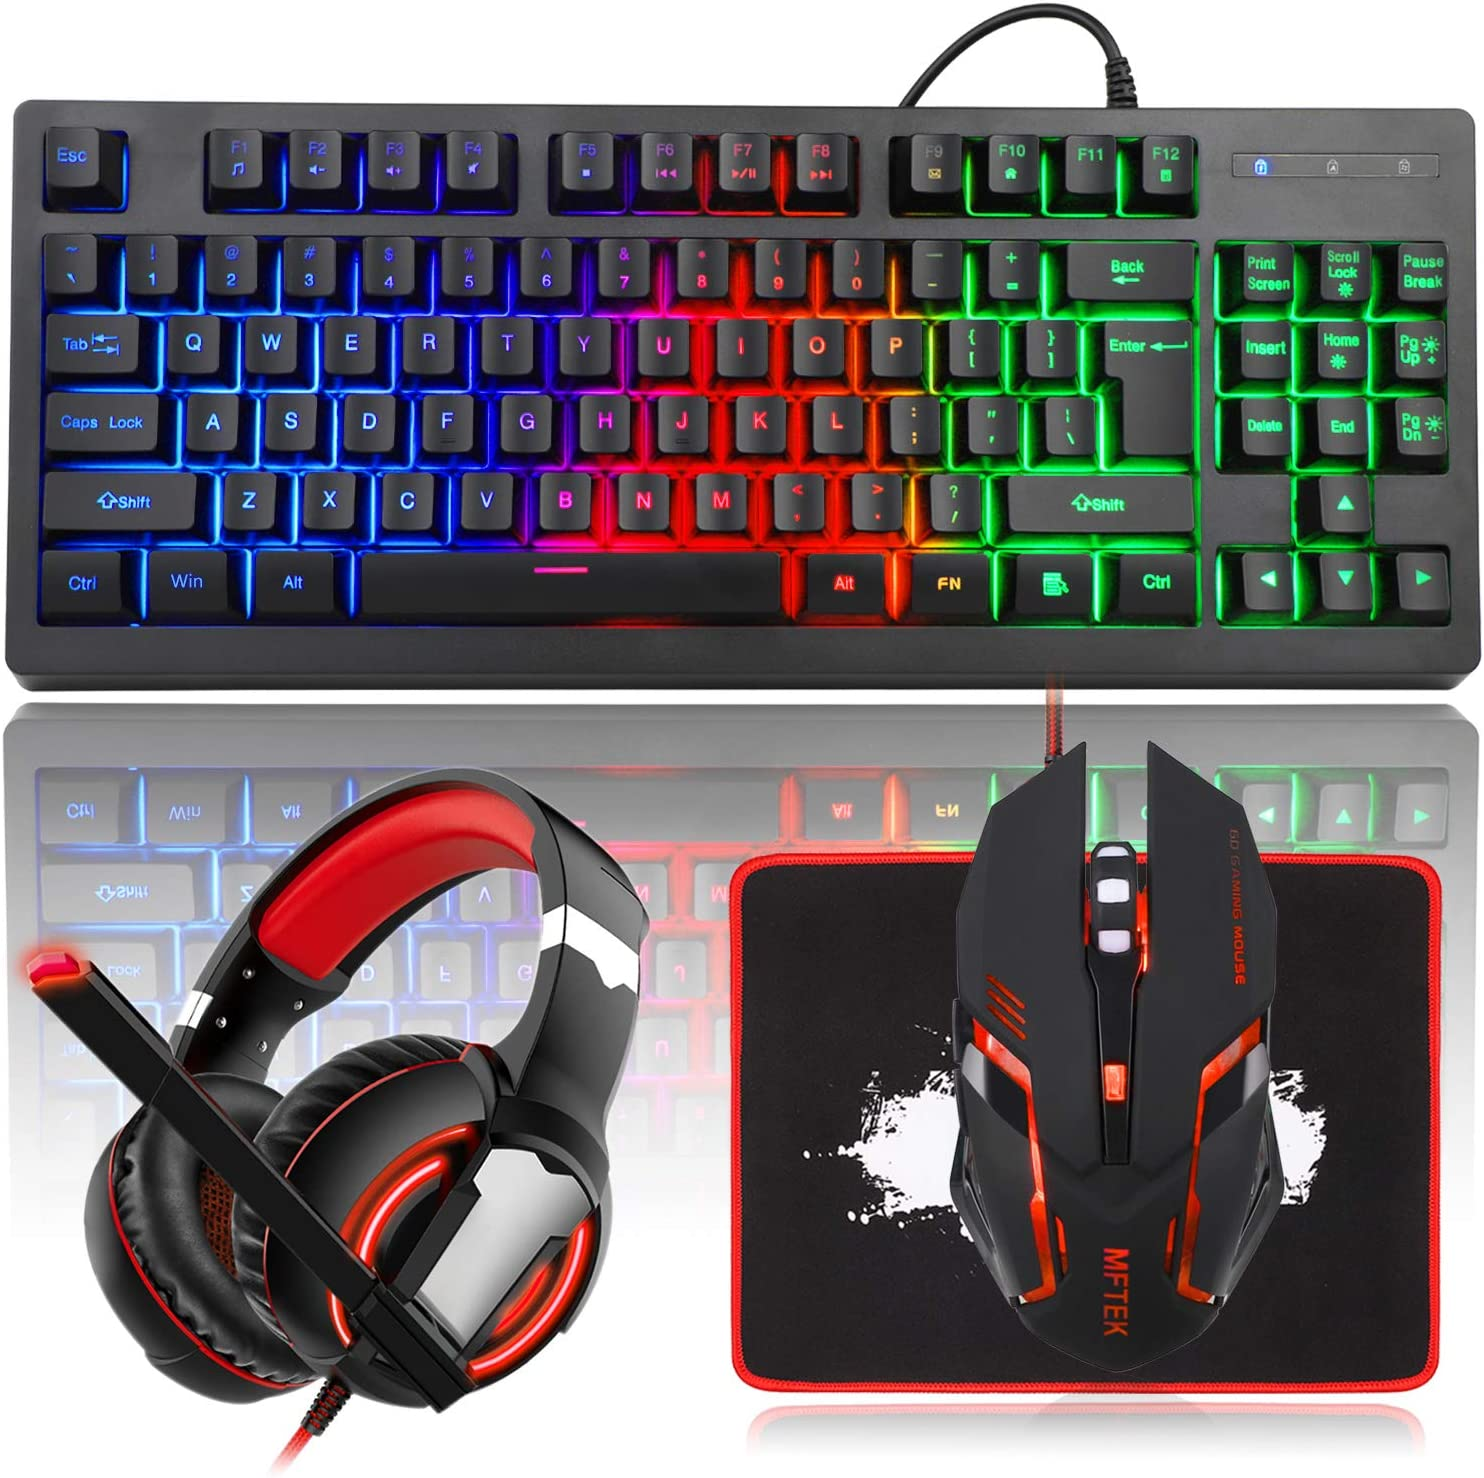 MFTEK RGB Rainbow Backlit Gaming 1 Sales of SALE items from new works year warranty Keyboard Mouse LED P Combo and